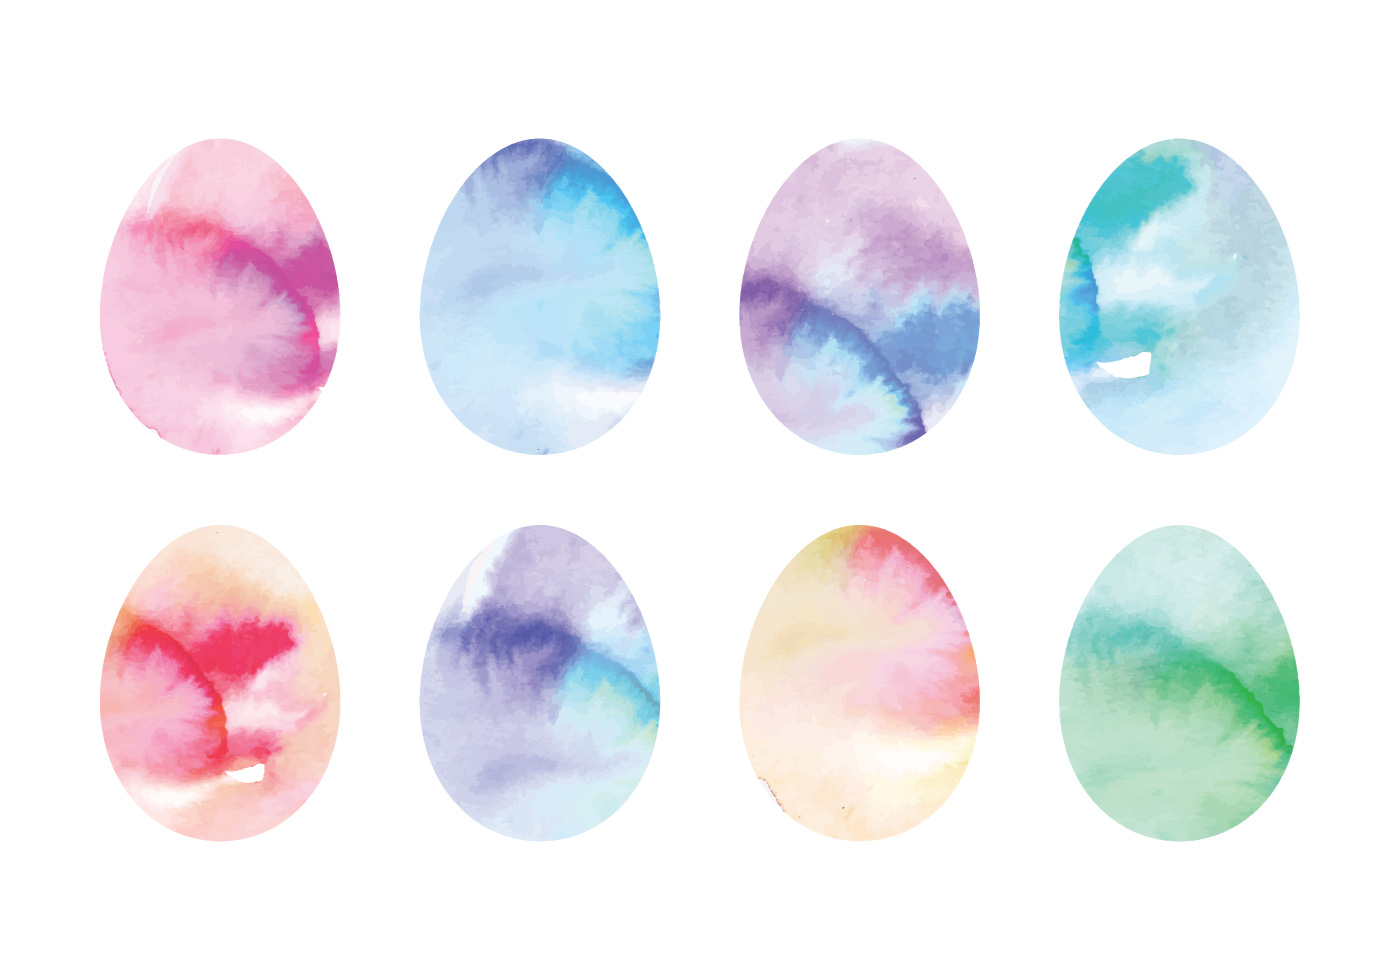 Cute Bordered Pastel Flower Wallpaper Vector Coloful Watercolor Easter Eggs Download Free